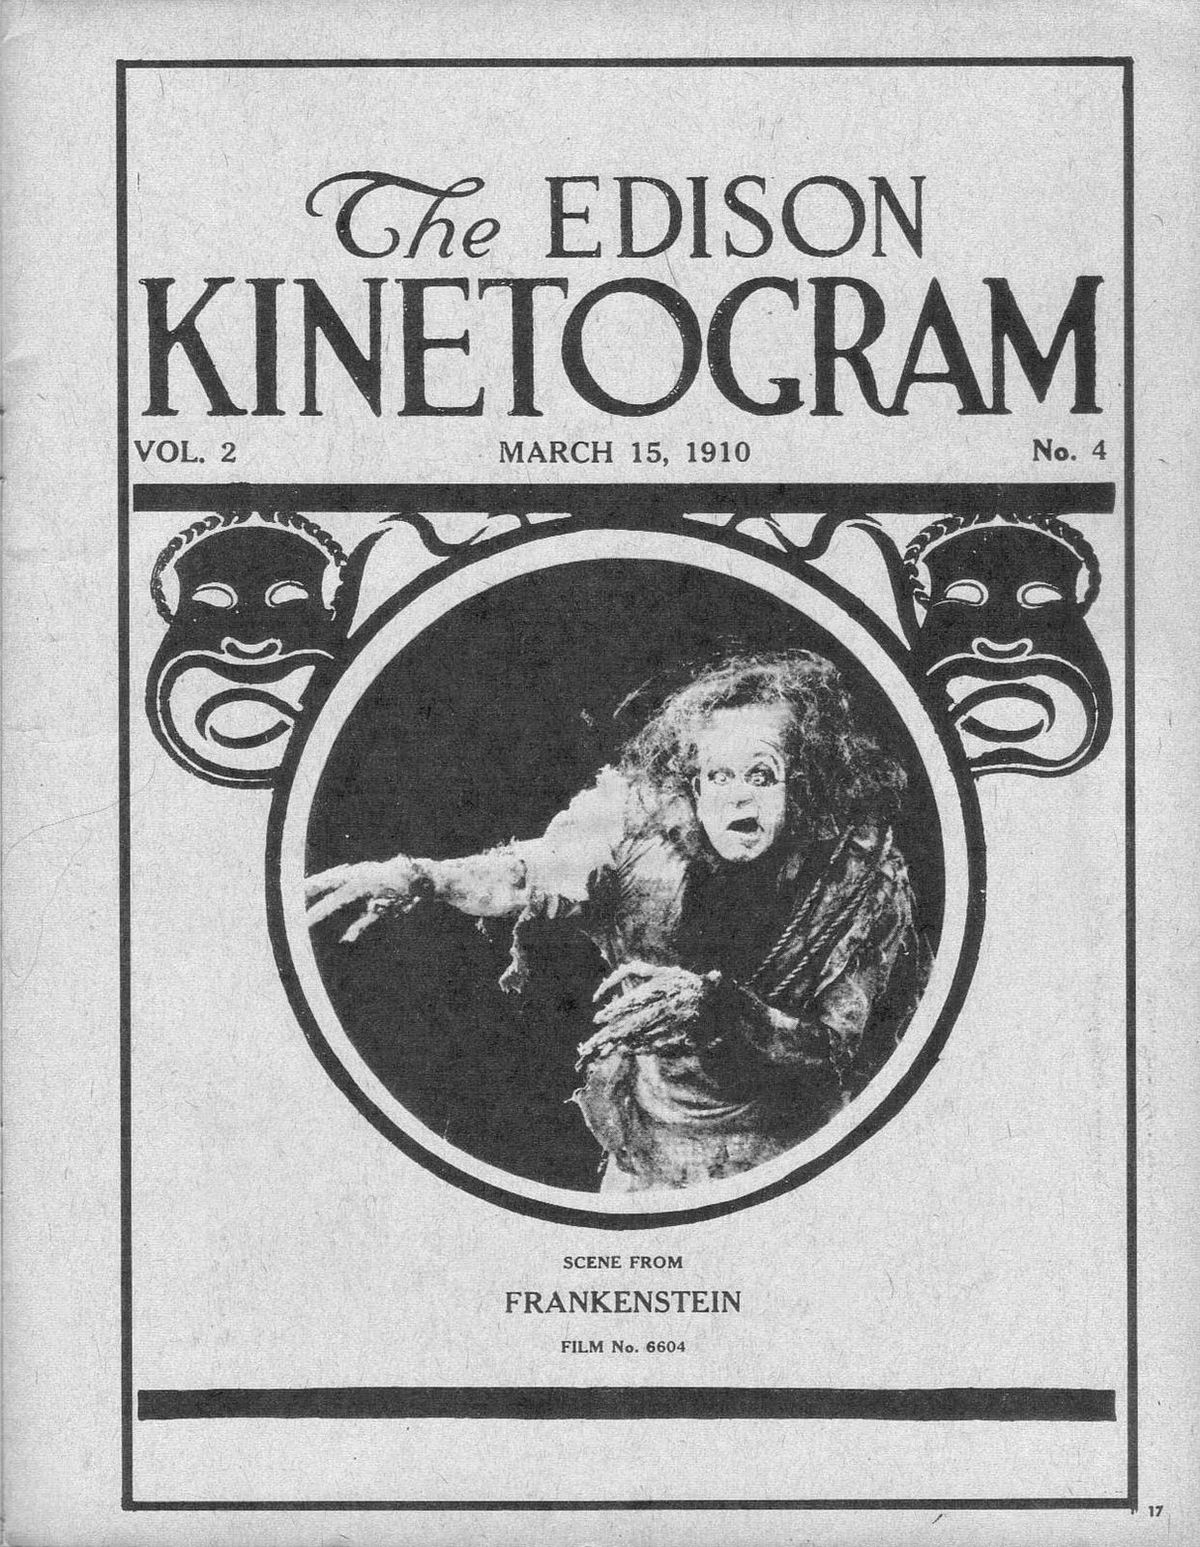 The Edison Kinetogram Frankenstein movie poster, 1910